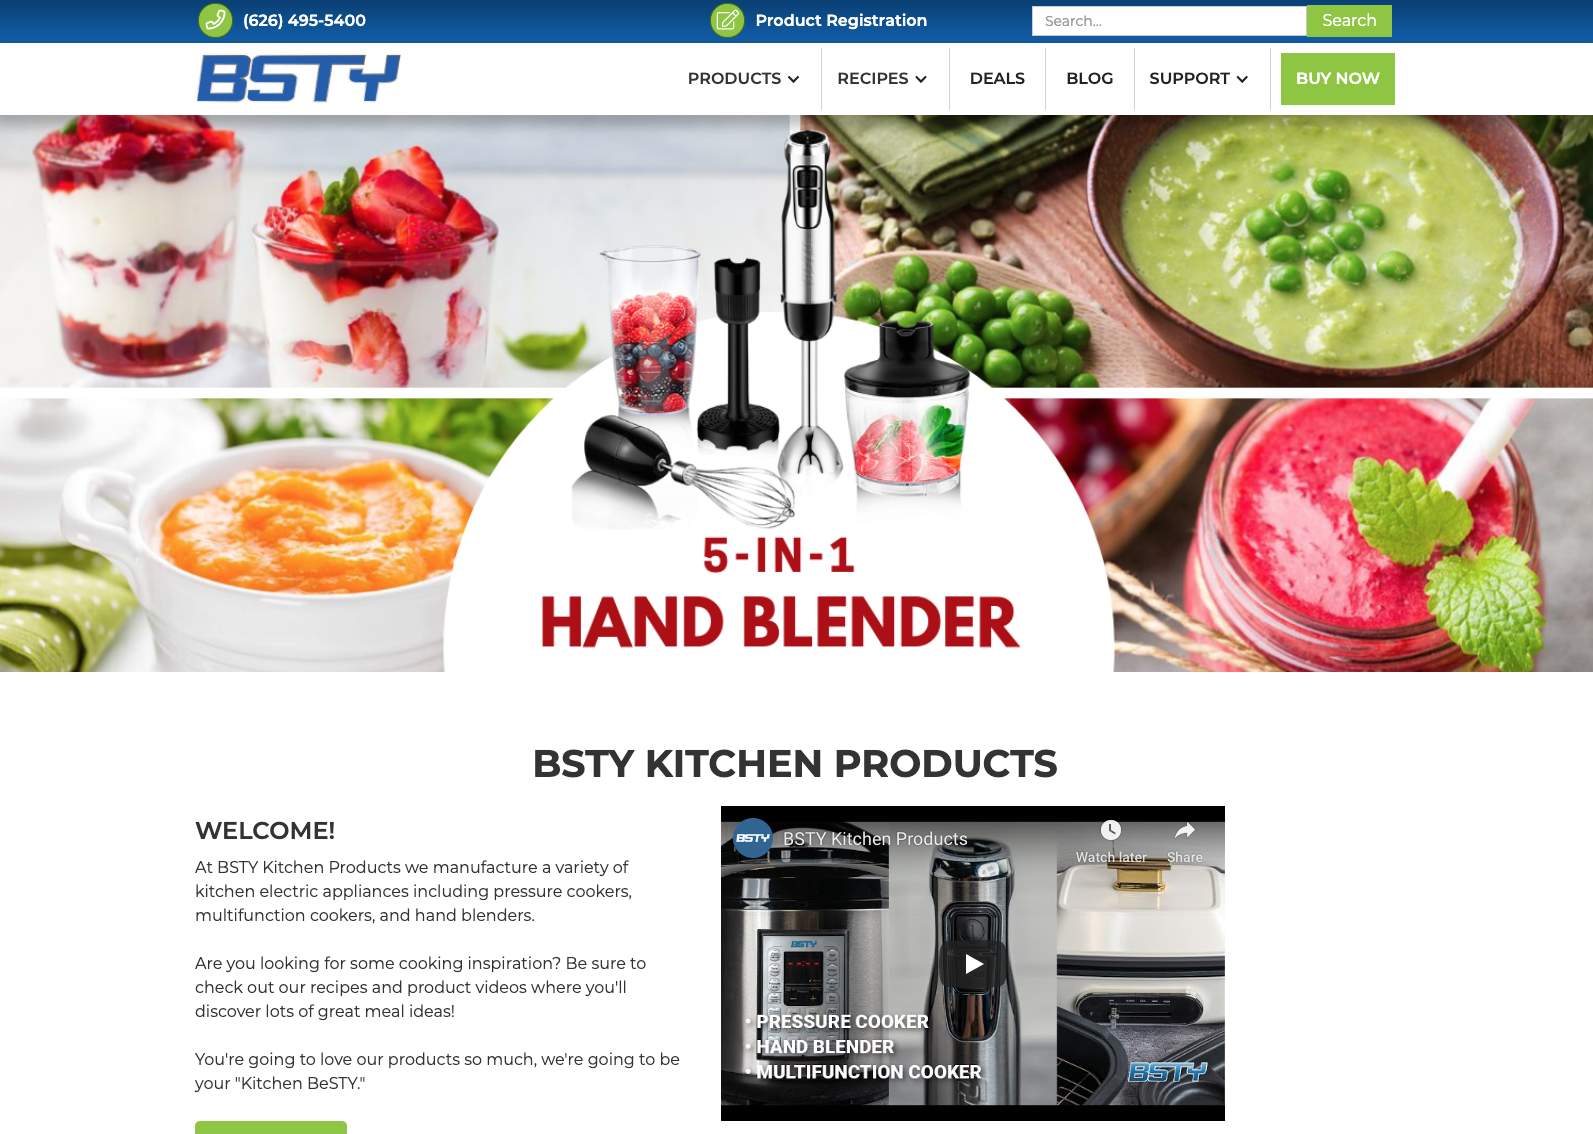 BSTY Kitchen Products website